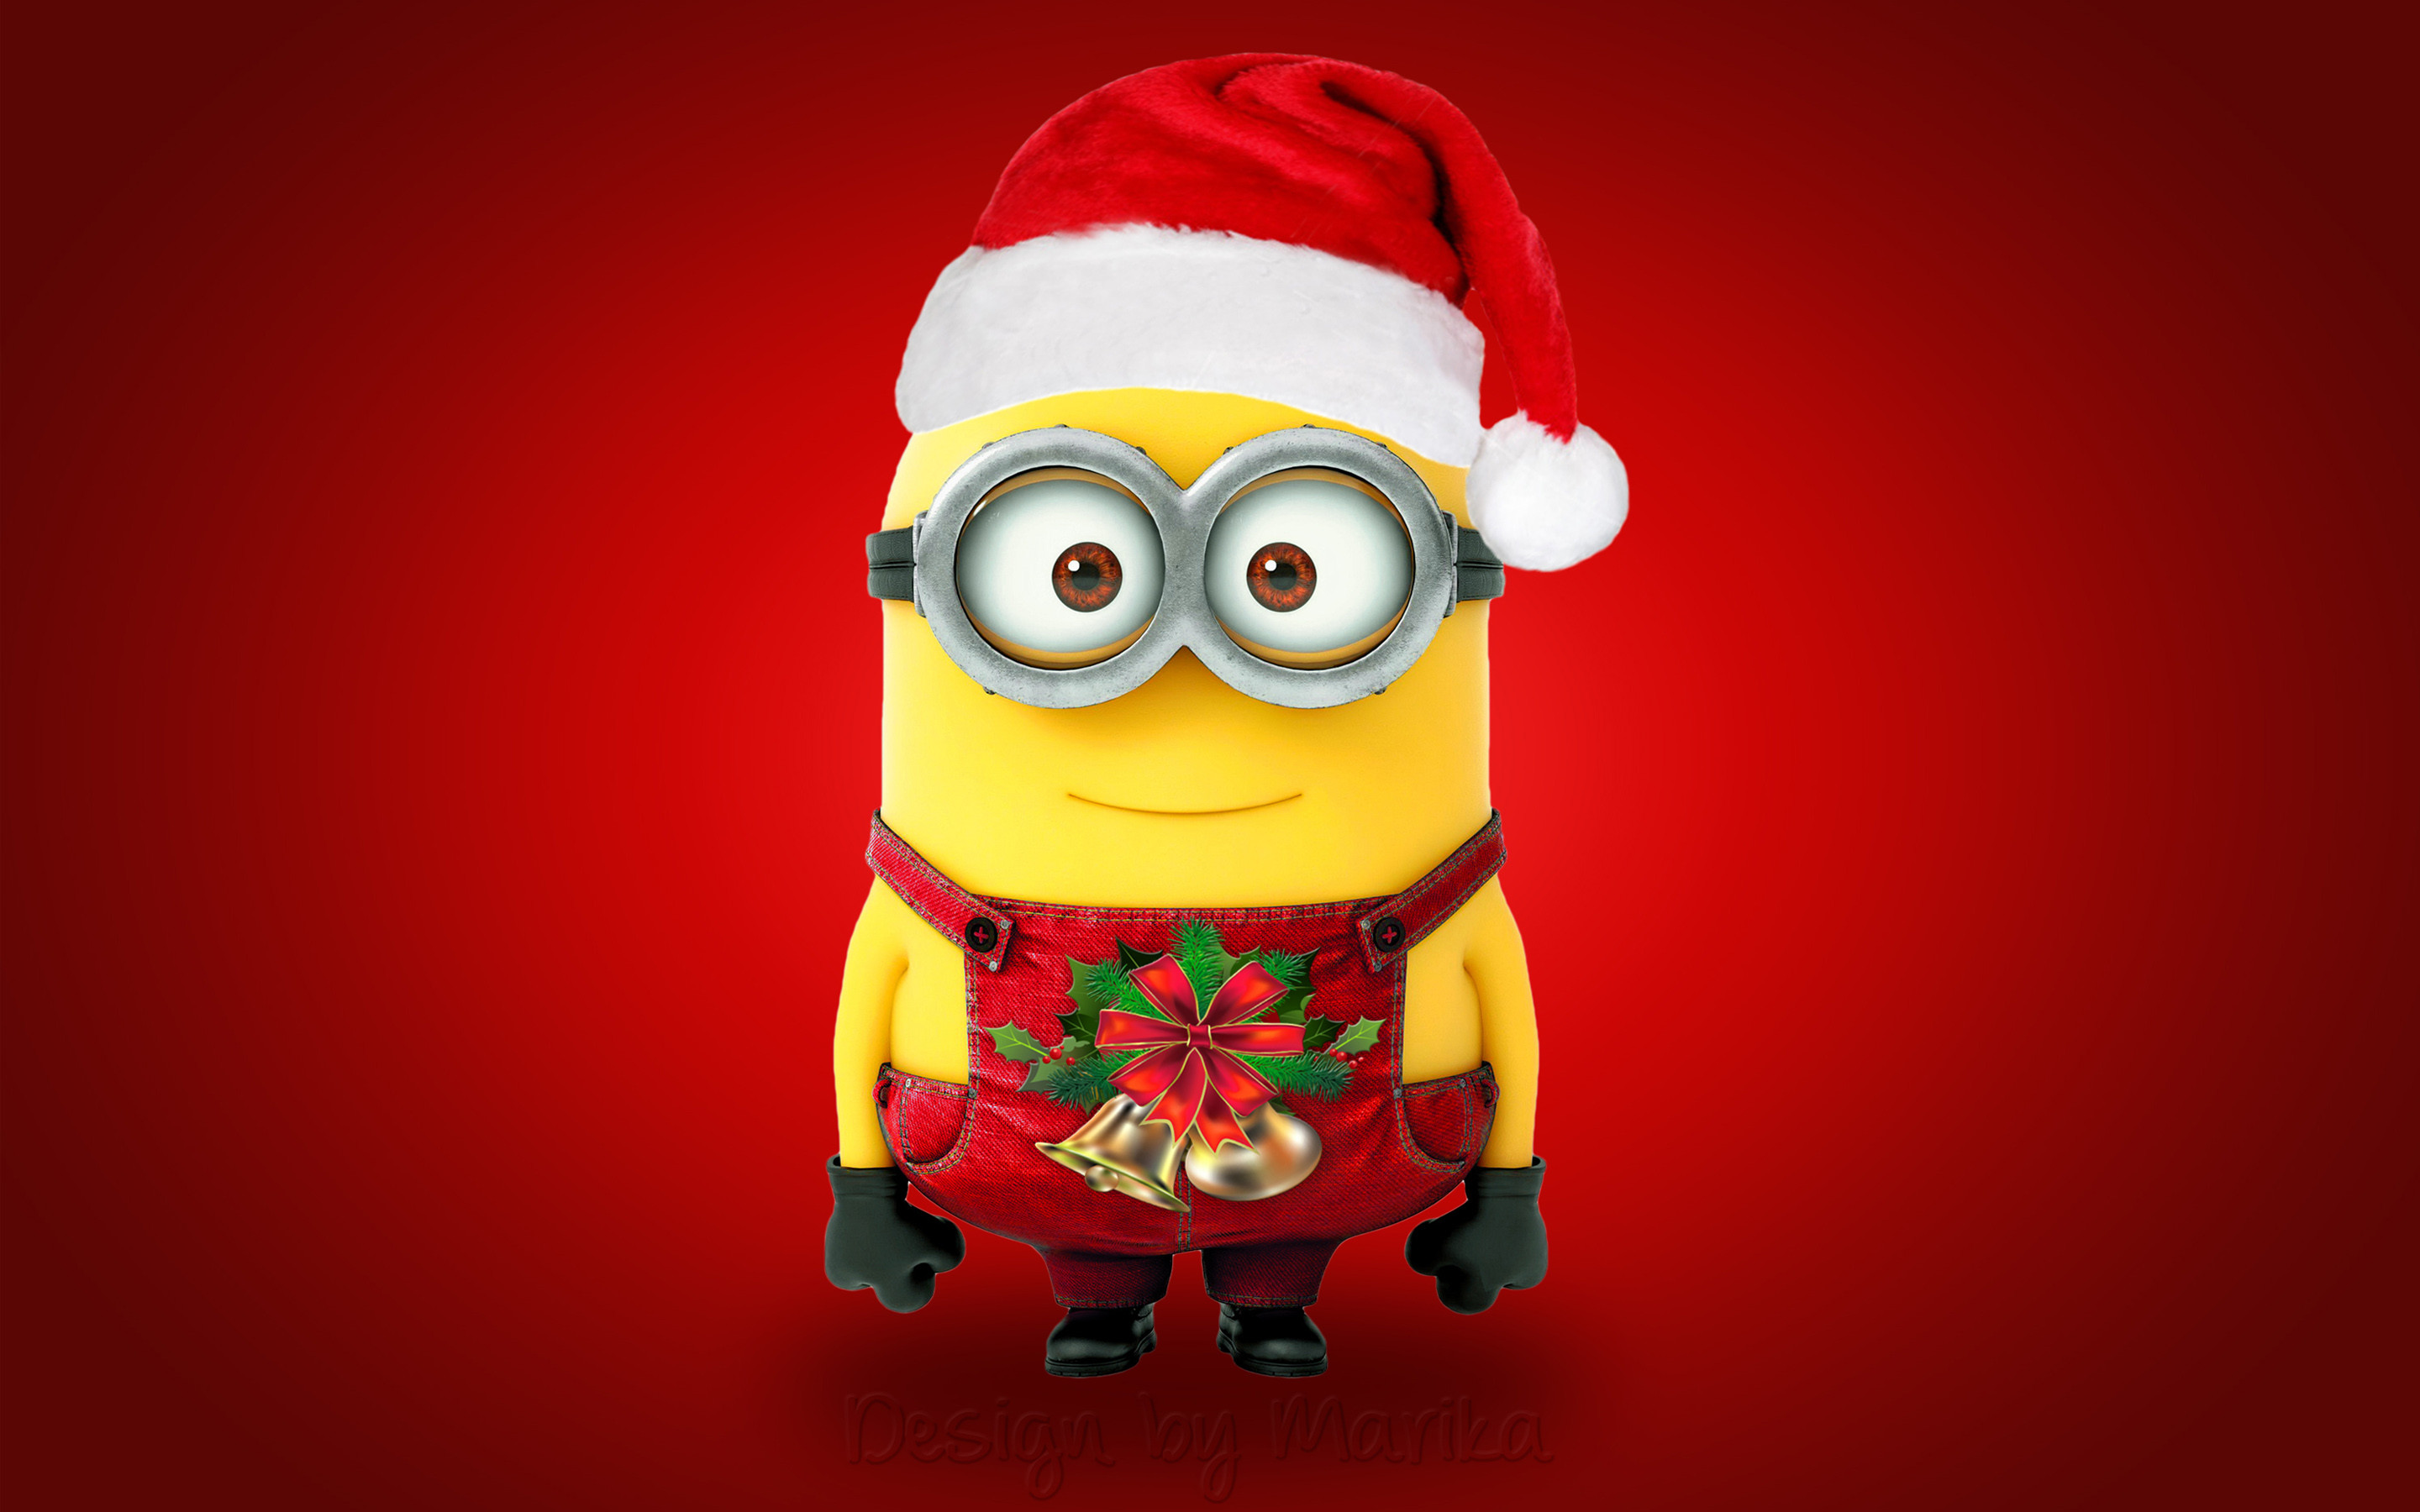 2880x1800 christmas-santa-minion-cute-hd-Wallpaper-2016.jpg